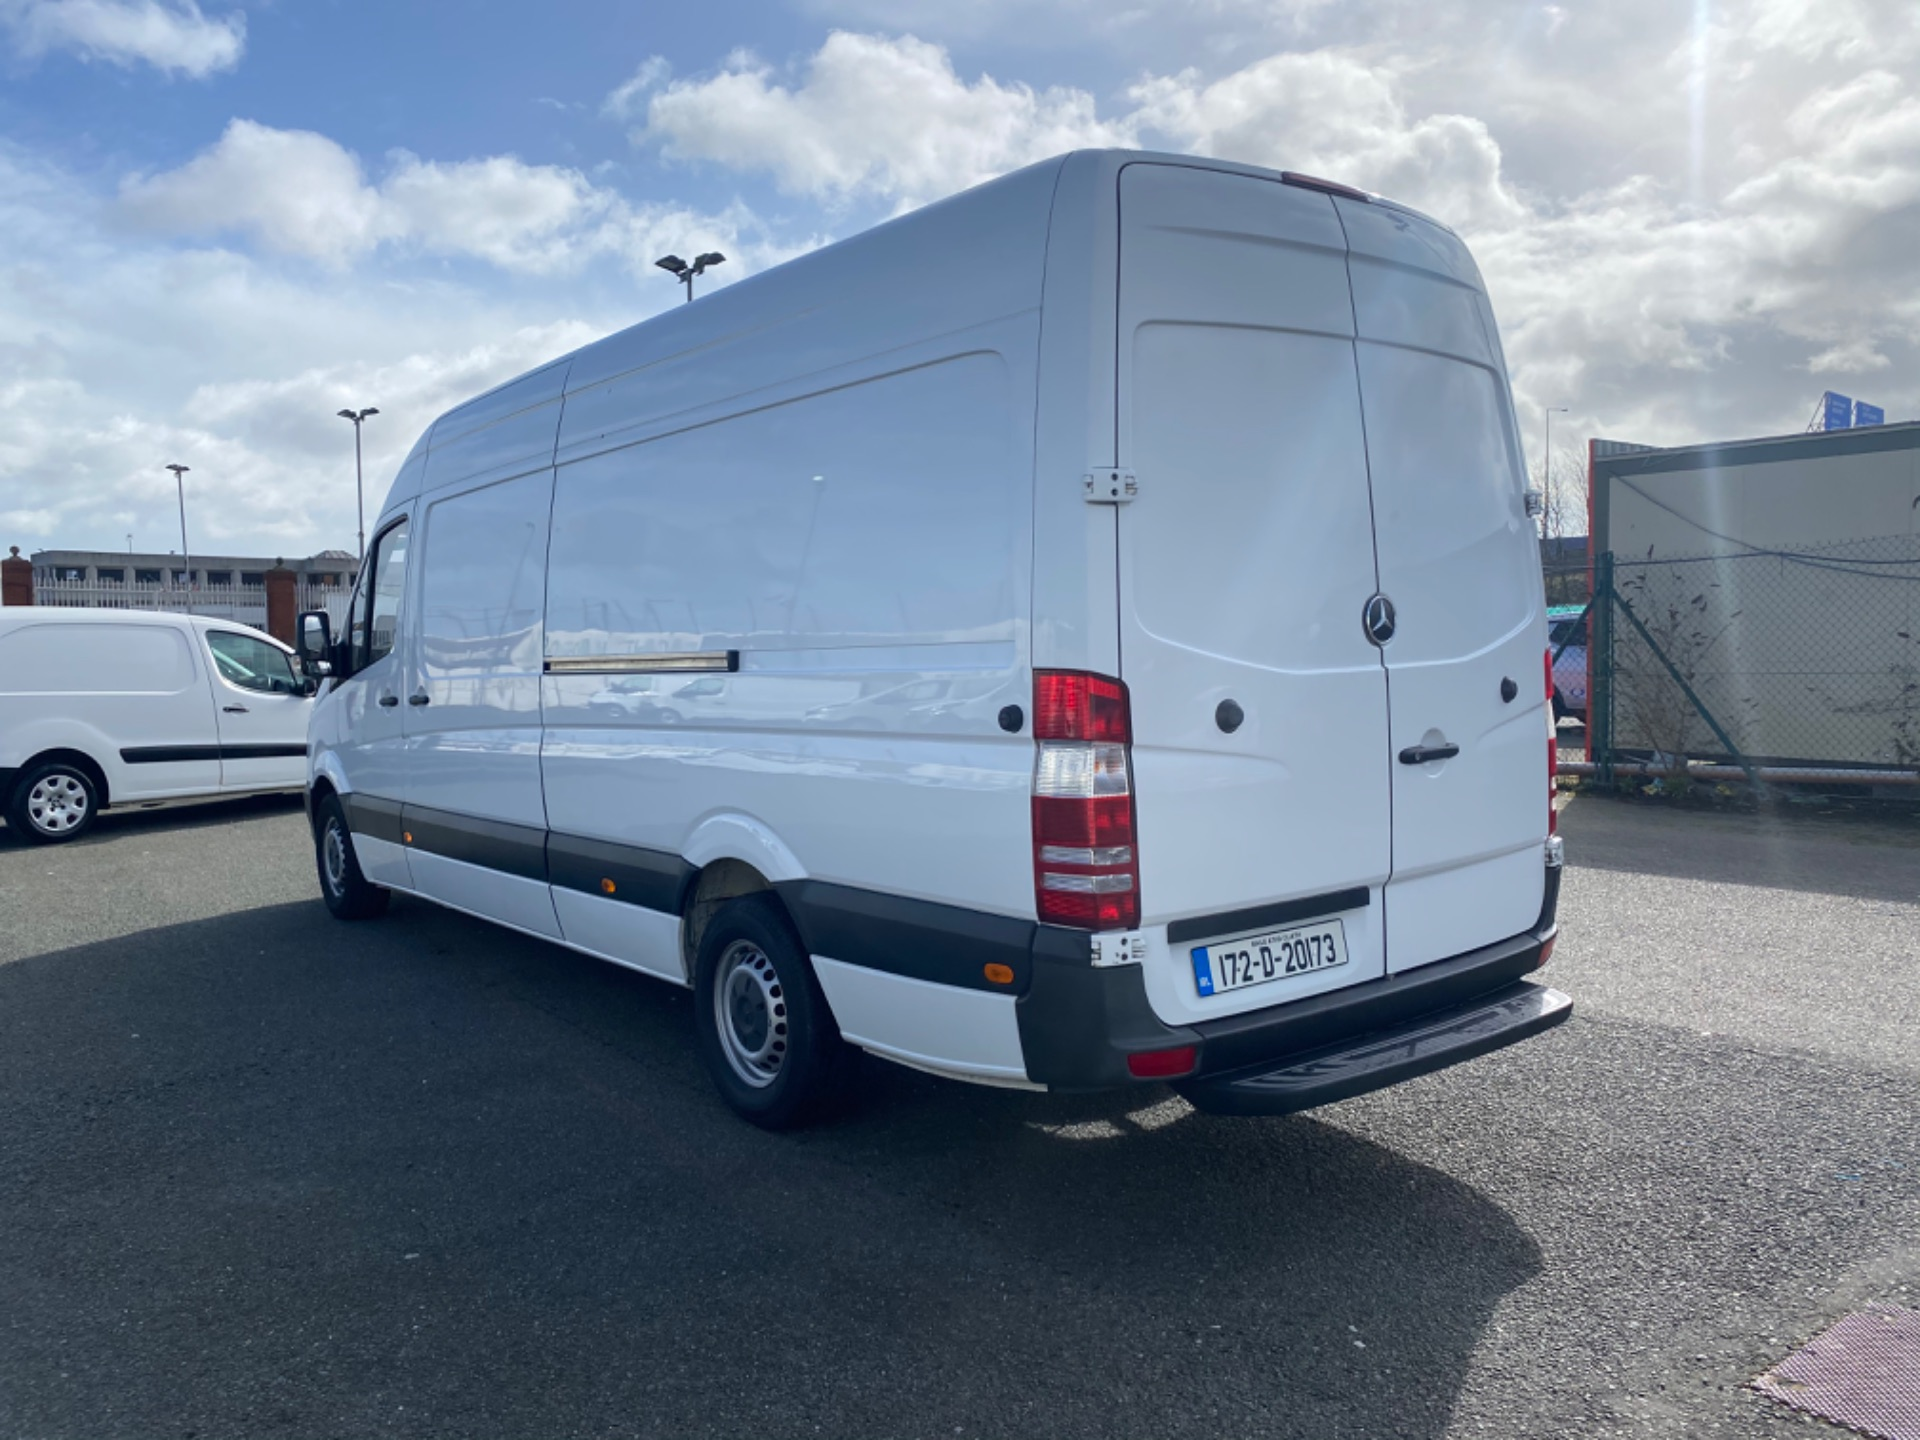 2017 Mercedes-Benz Sprinter 314/43 EU6 6DR (172D20173) Thumbnail 5